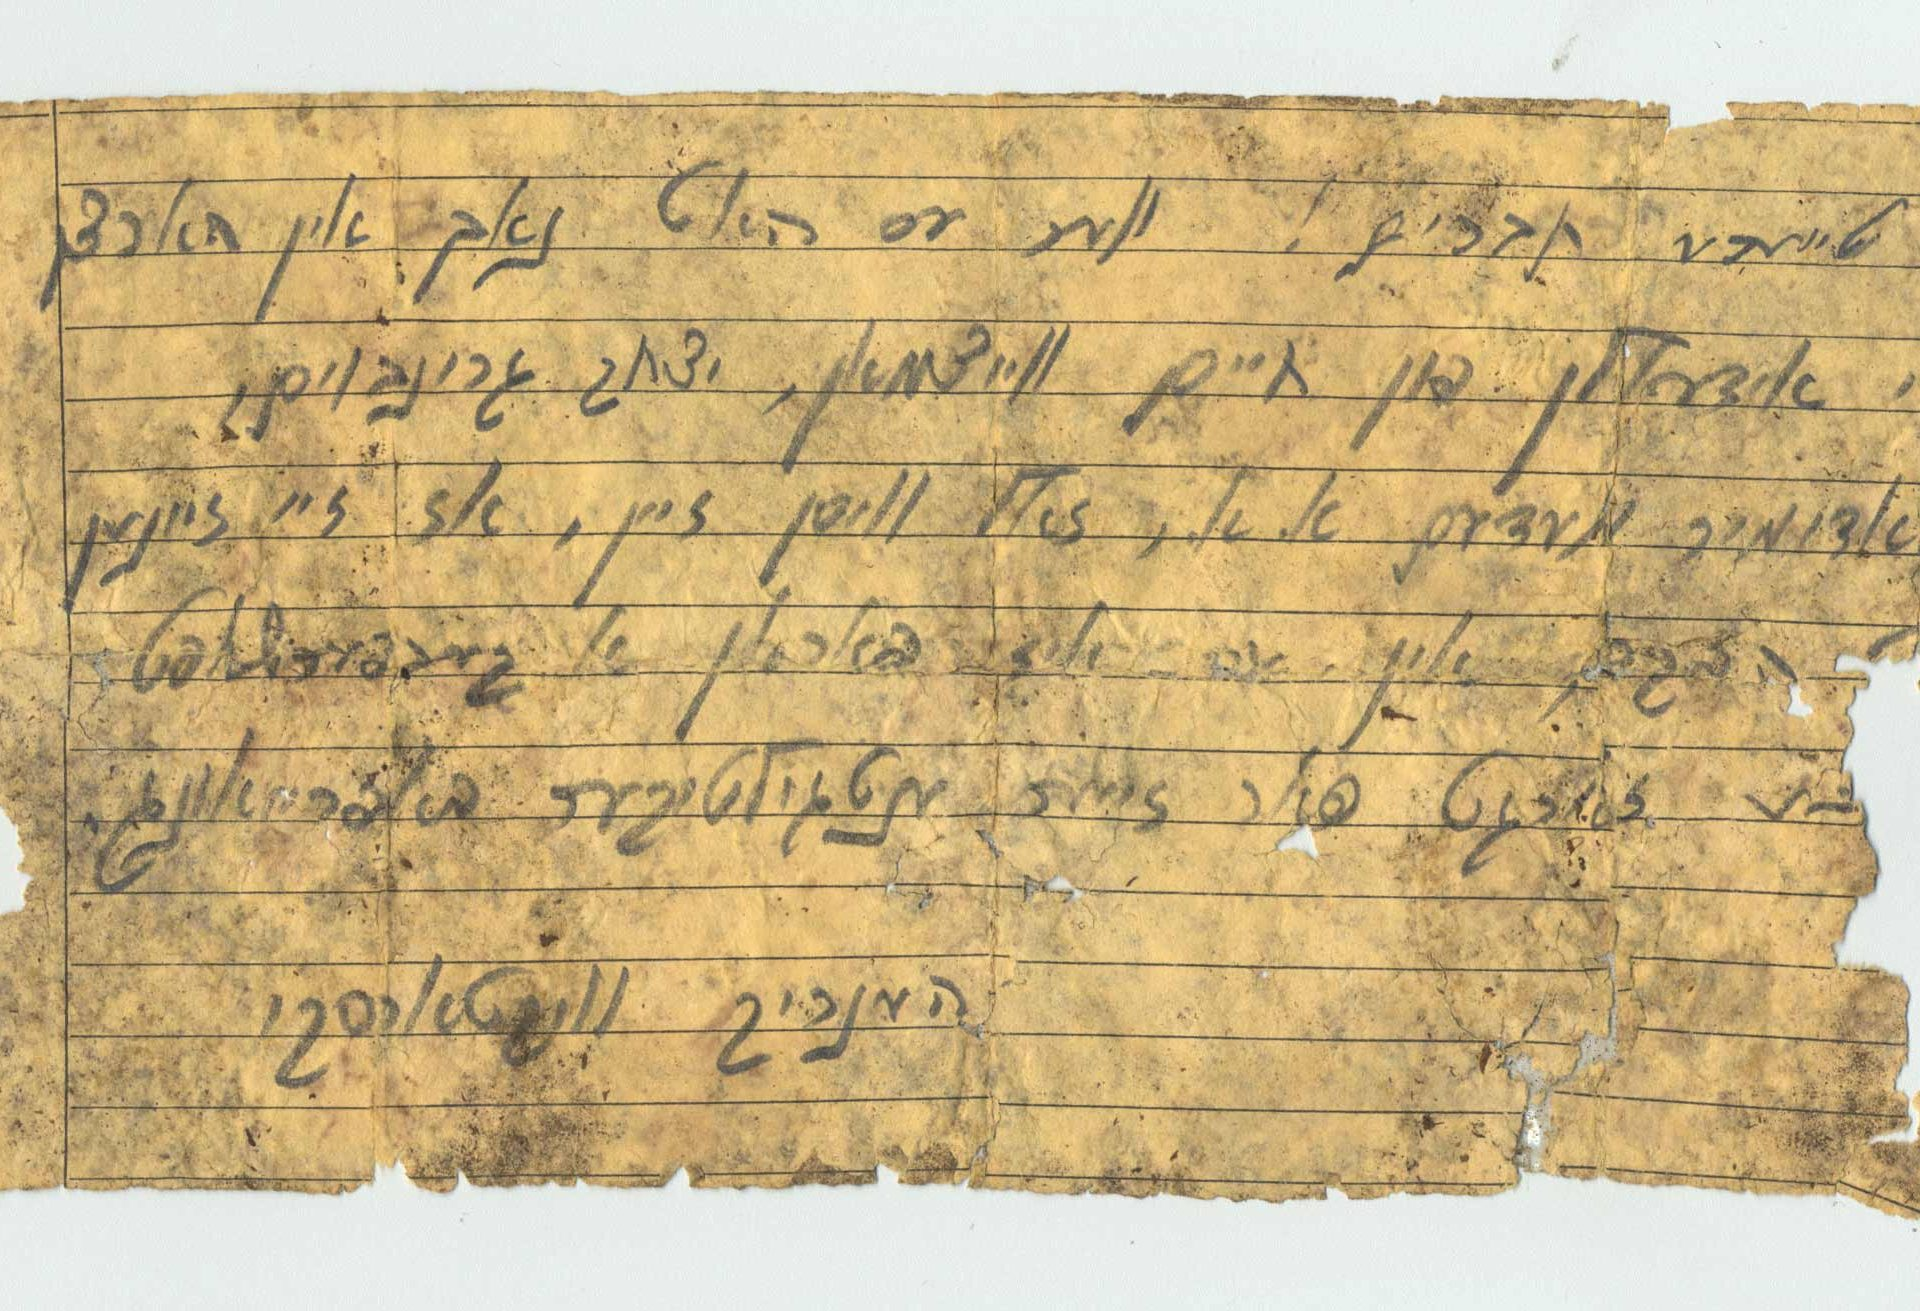 This letter reveals the secret exchanges between Charles Kotkowski and a resistance group in the Warsaw ghetto. © Montreal Holocaust Museum